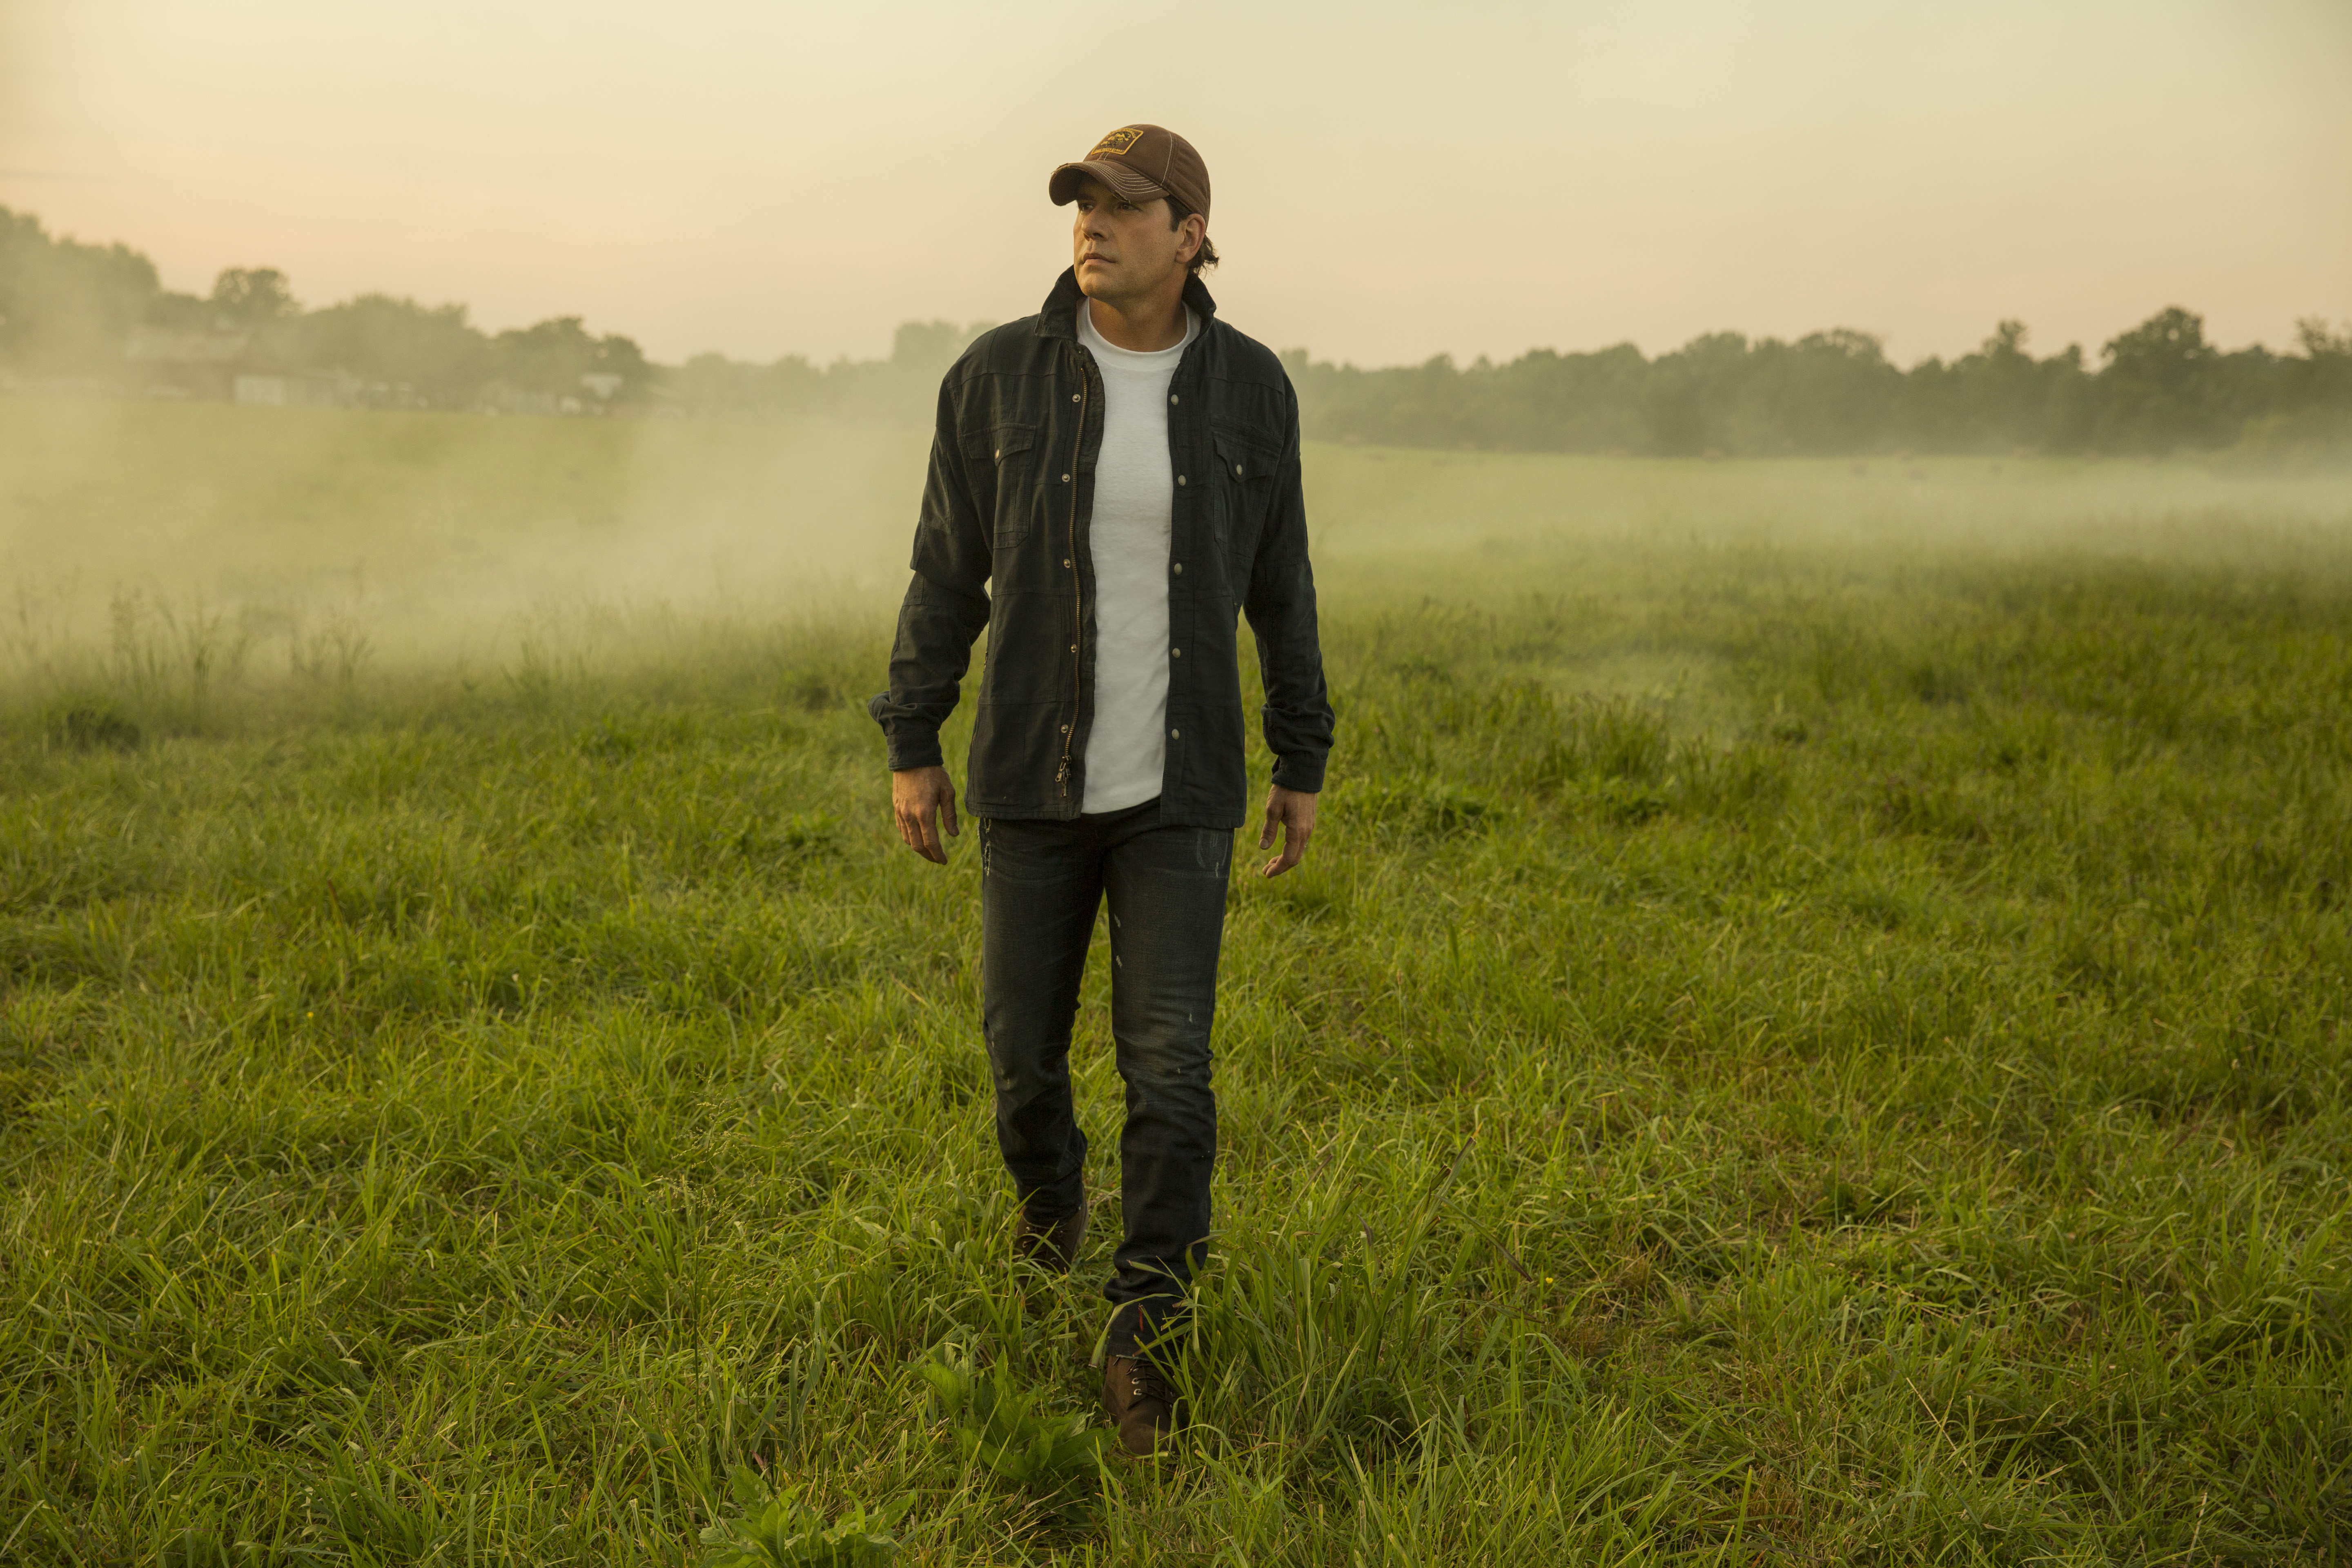 Rodney Atkins PR image as featured on the Jesus Calling podcast